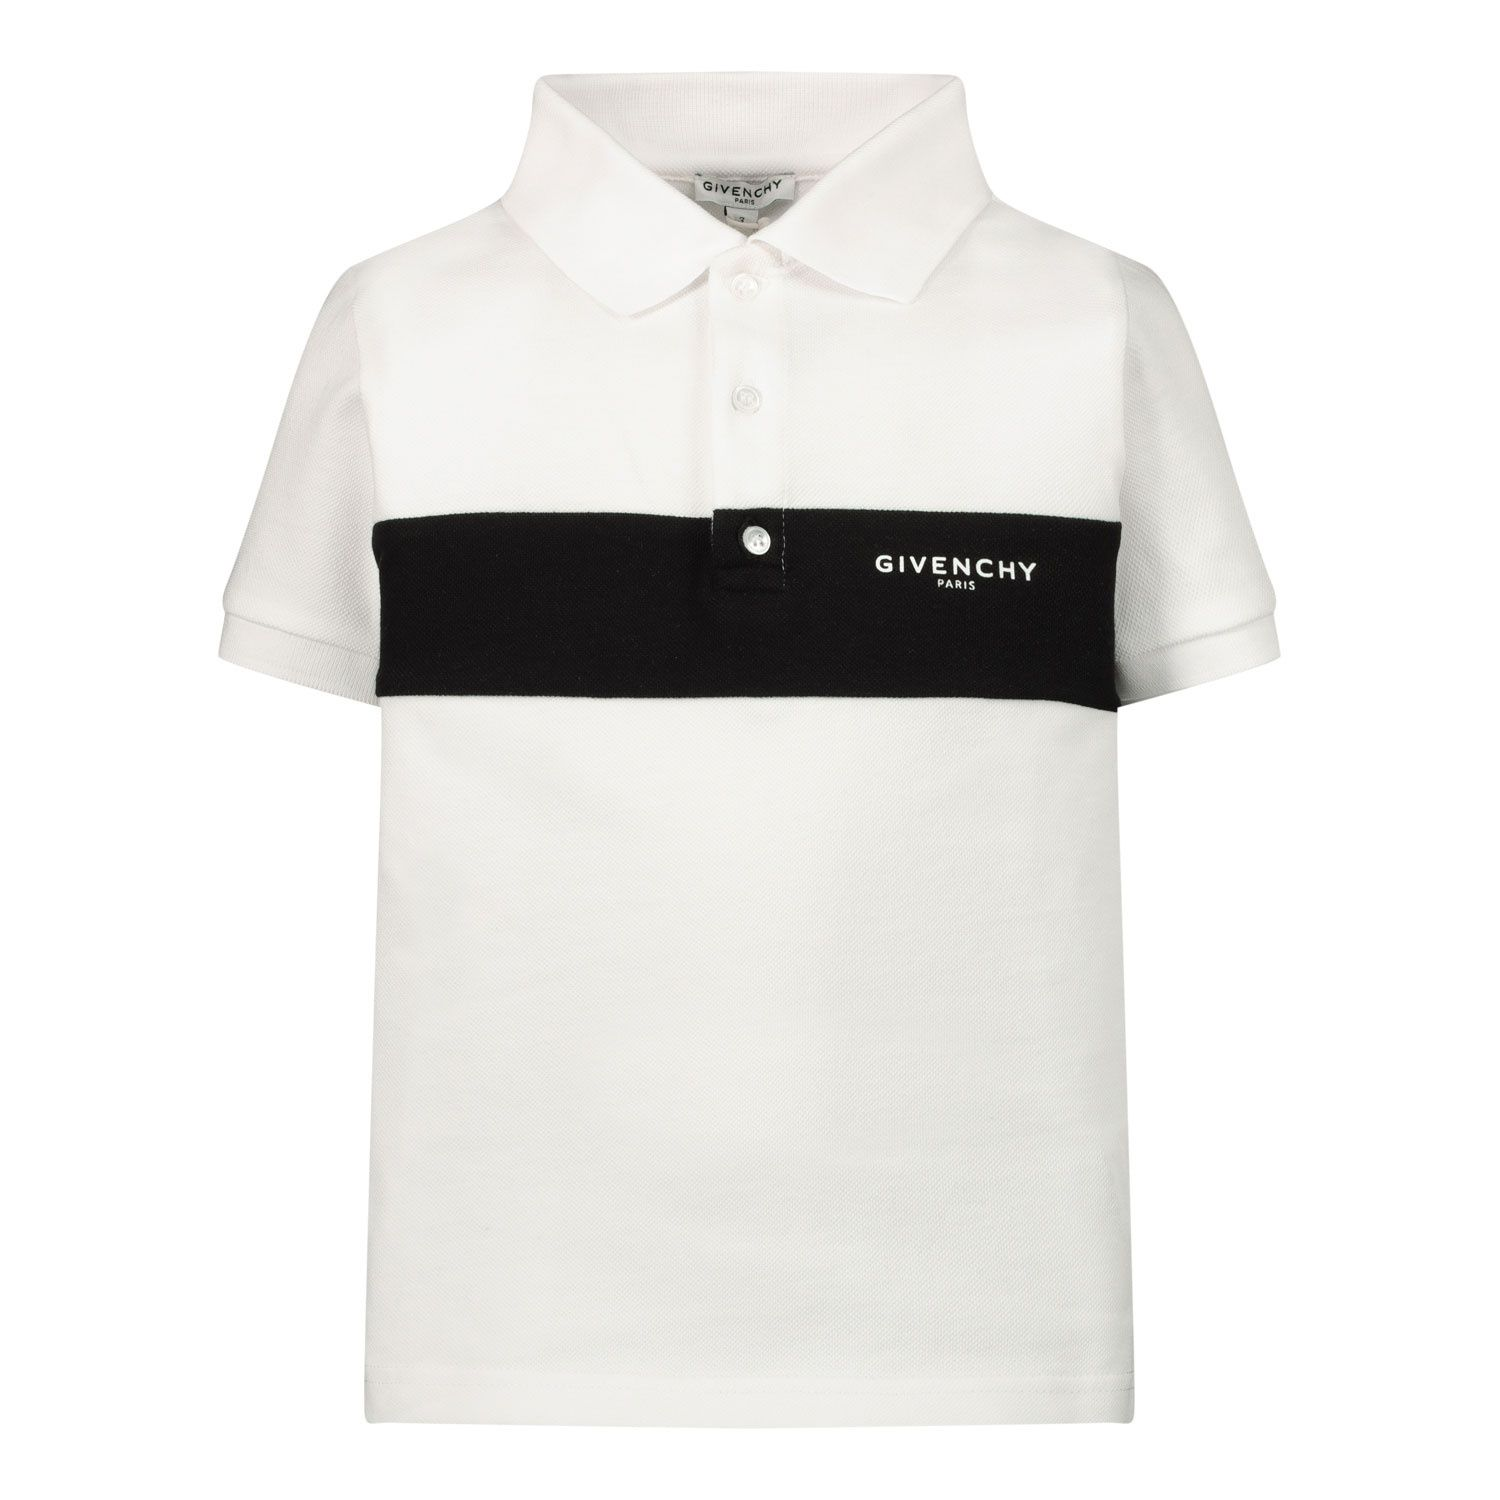 Afbeelding van Givenchy H05152 baby polo wit